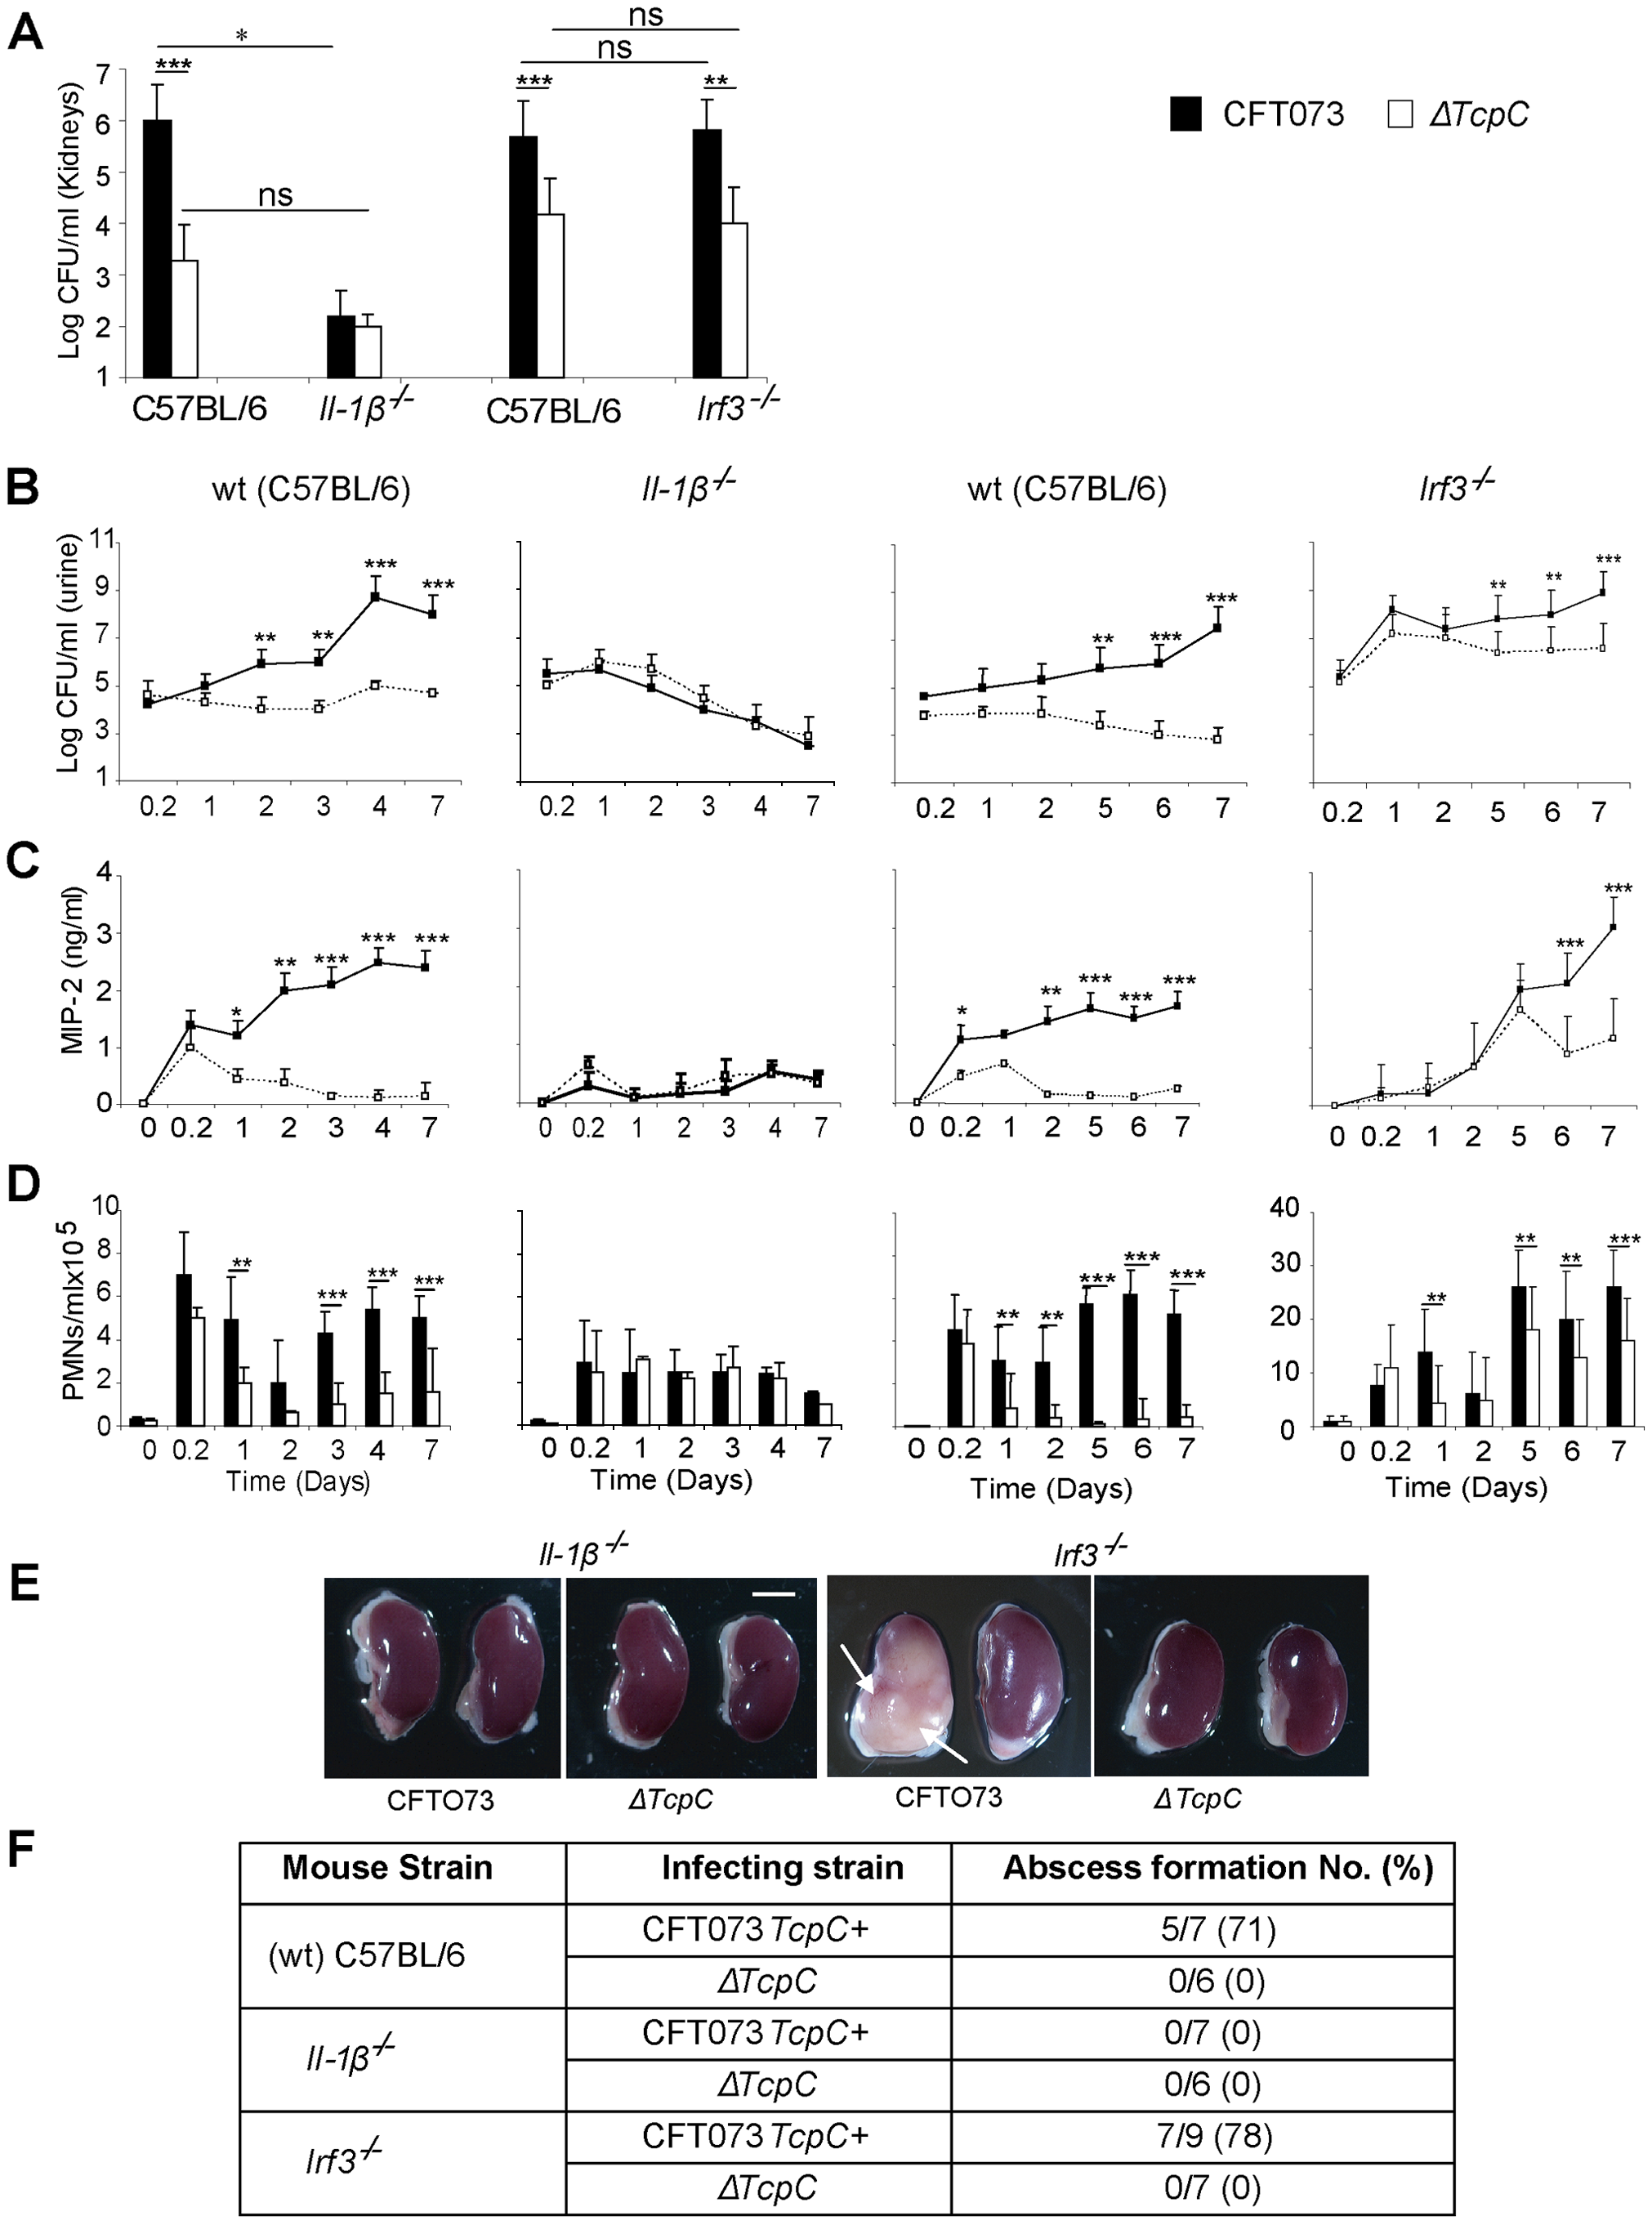 Effects of TcpC virulence in <i>Il-1β<sup>−/−</sup> and <b><i>Irf3<sup>−/−</sup></i></b> mice infected with CFT073 or Δ</i><i>TcpC</i>.